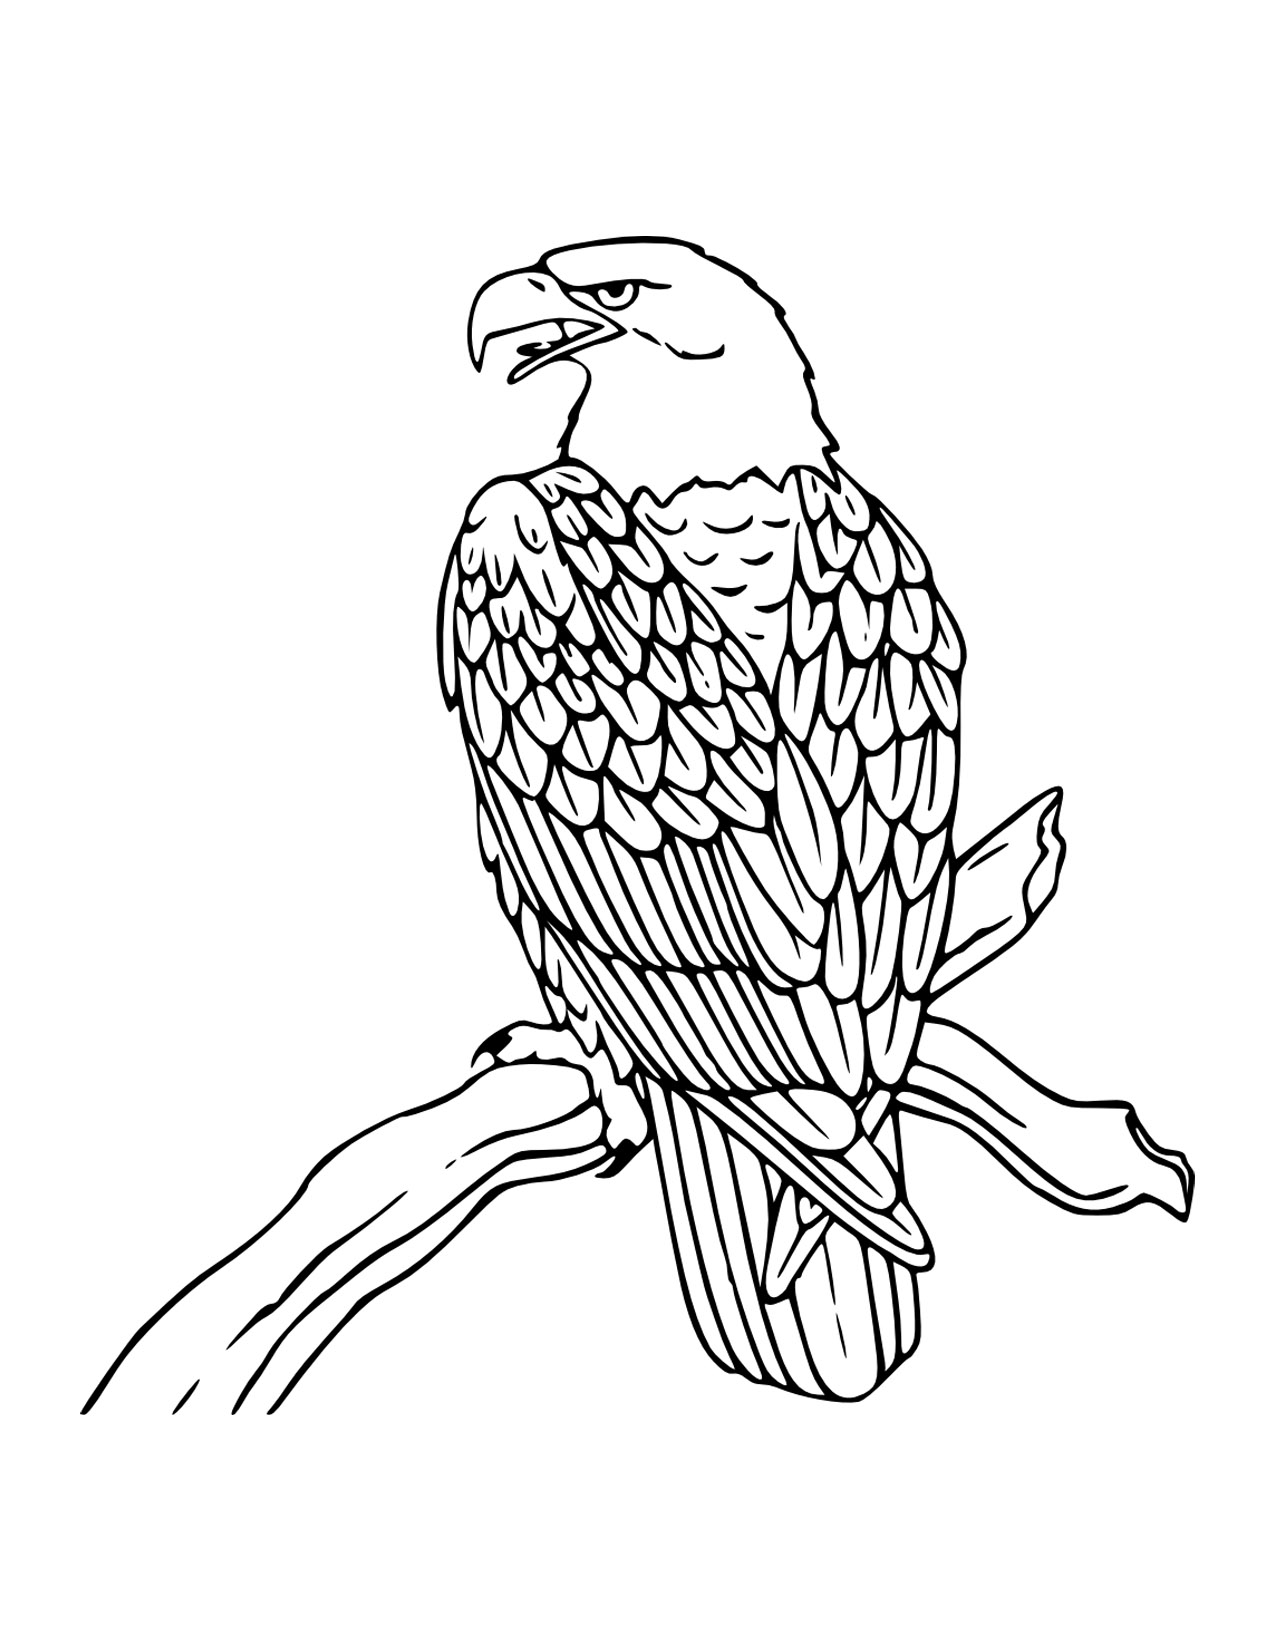 eagle color pages eagle coloring pages to download and print for free color eagle pages